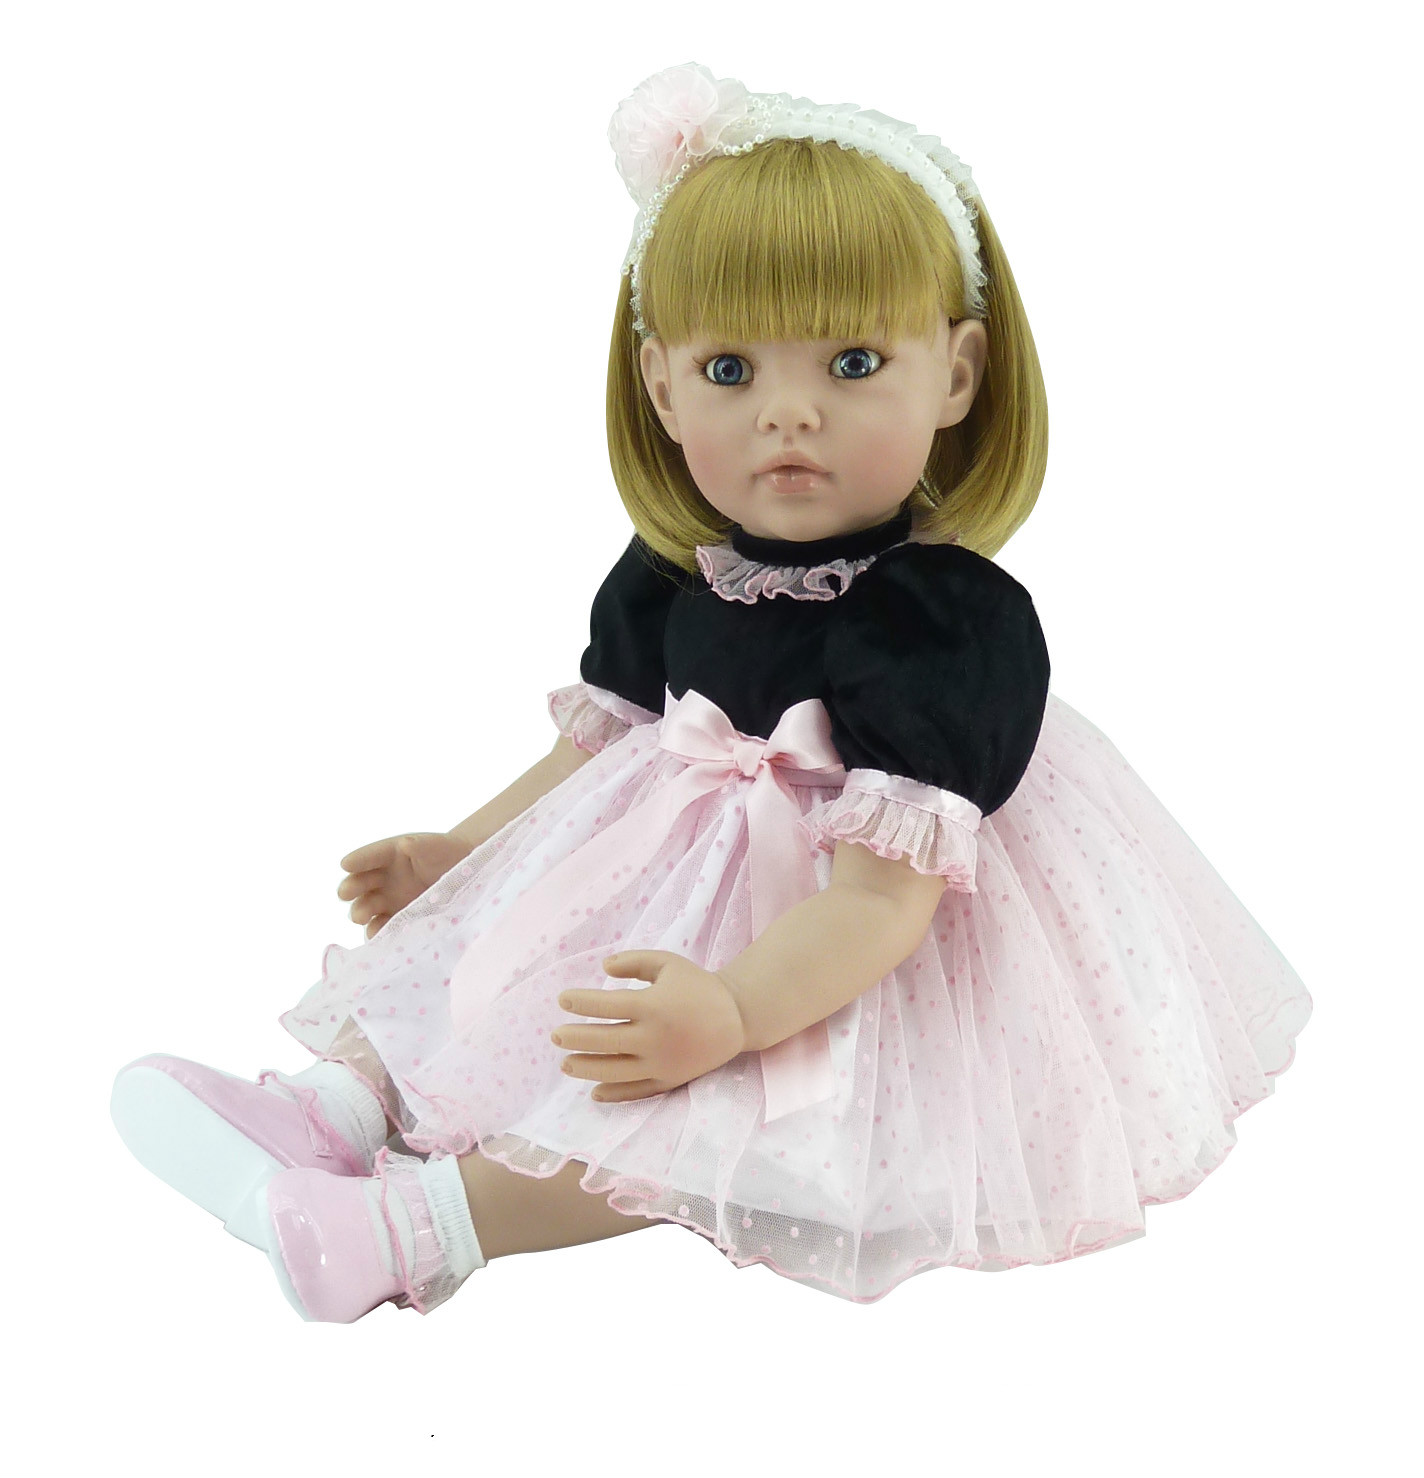 22inch Soft Silicone Reborn Baby Doll Toy Lifelike Girl Princess Doll Baby Play House Toys Birthday Christmas Gift Present soft silica gel doll 57cm reborn baby appease doll lifelike babies play play house toy for children s christmas birthday gift